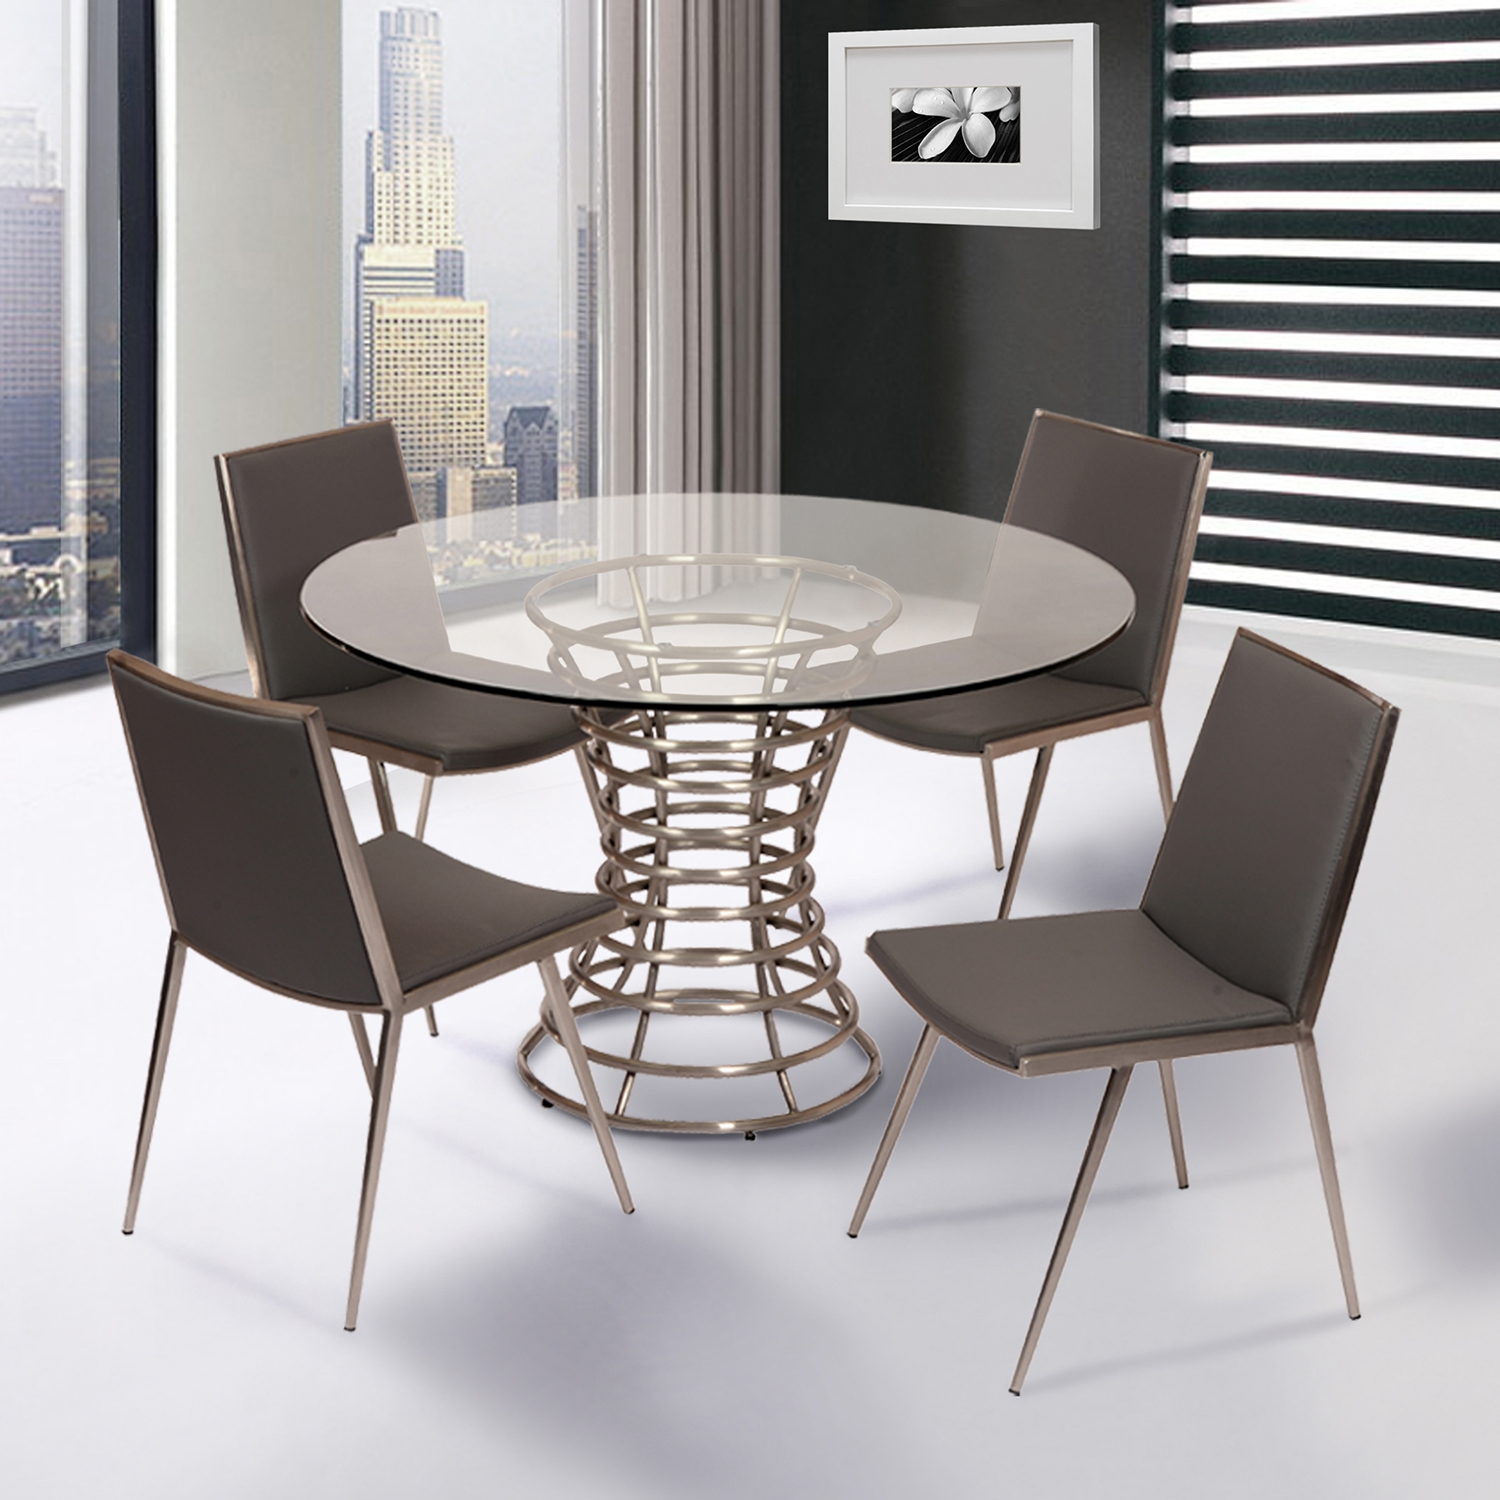 Ibiza Dining Table - Clear Glass Top, Brushed Stainless Steel - AL-LCIBDIB201